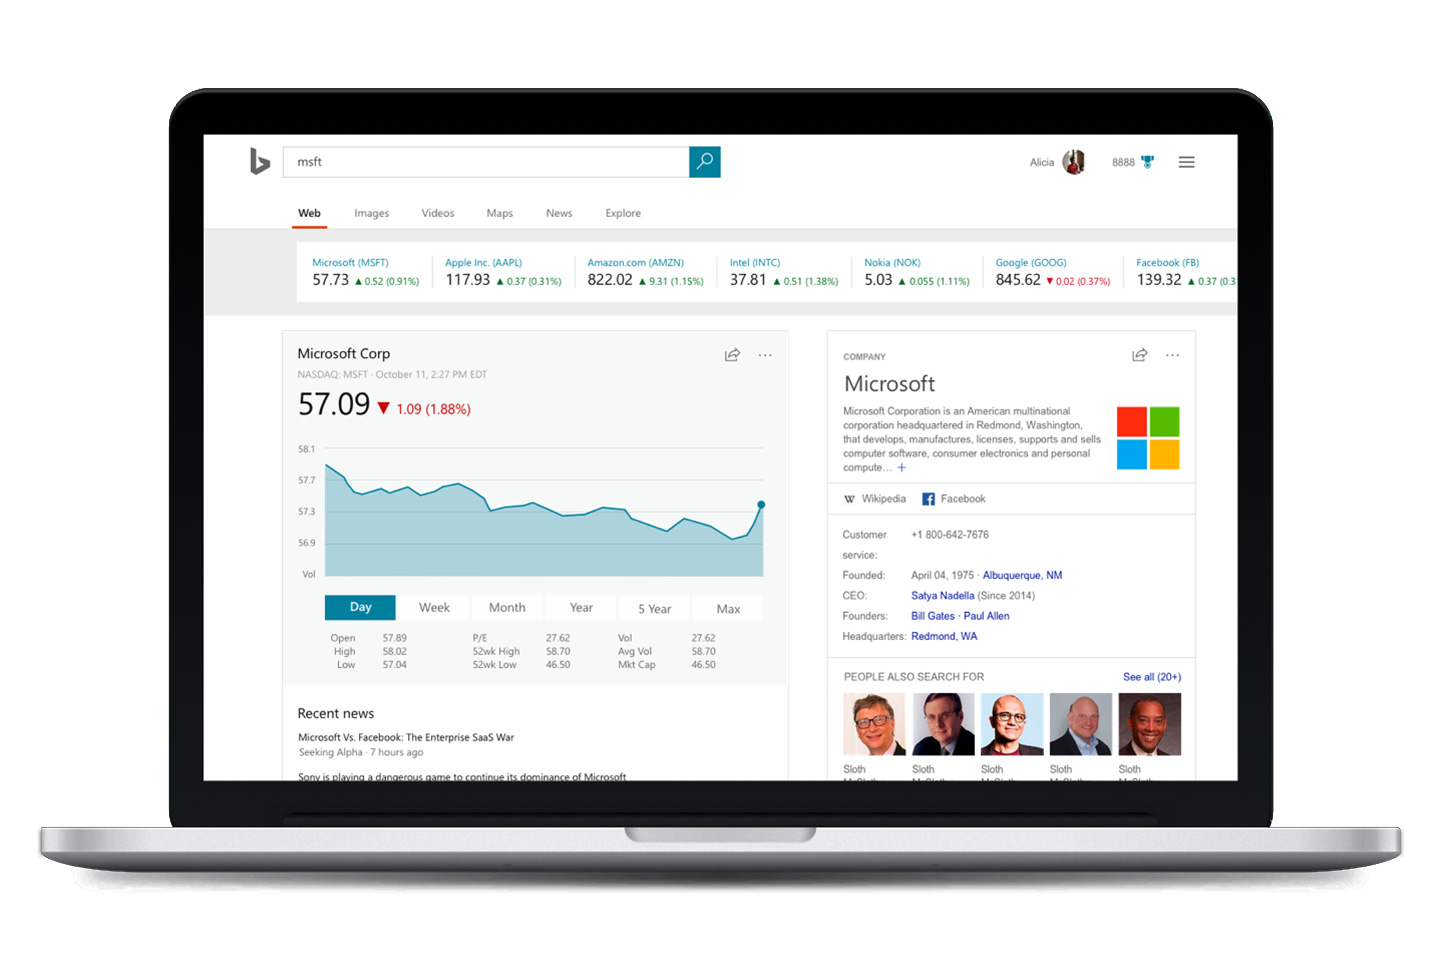 Bing Answers - Stocks Exploration